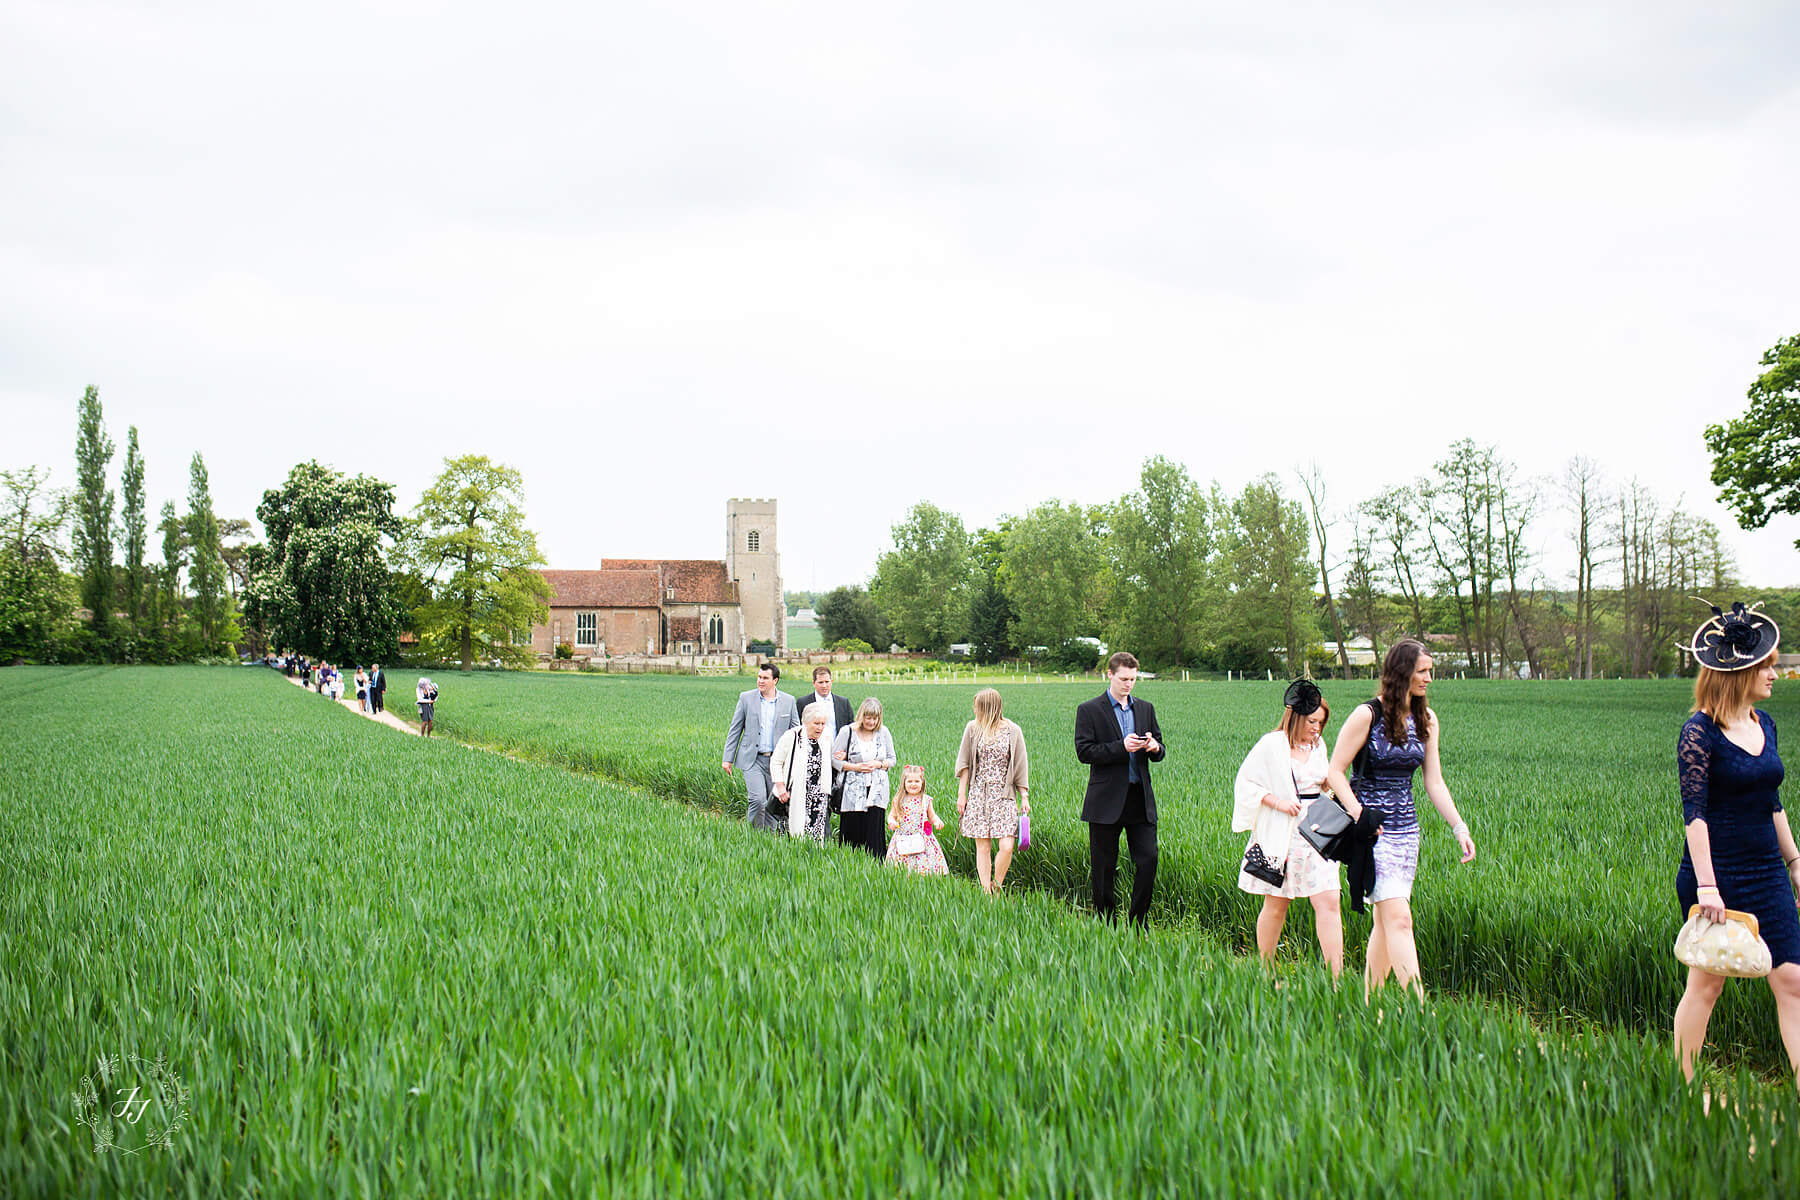 The walk from Gosfield Church to Gosfield Hall